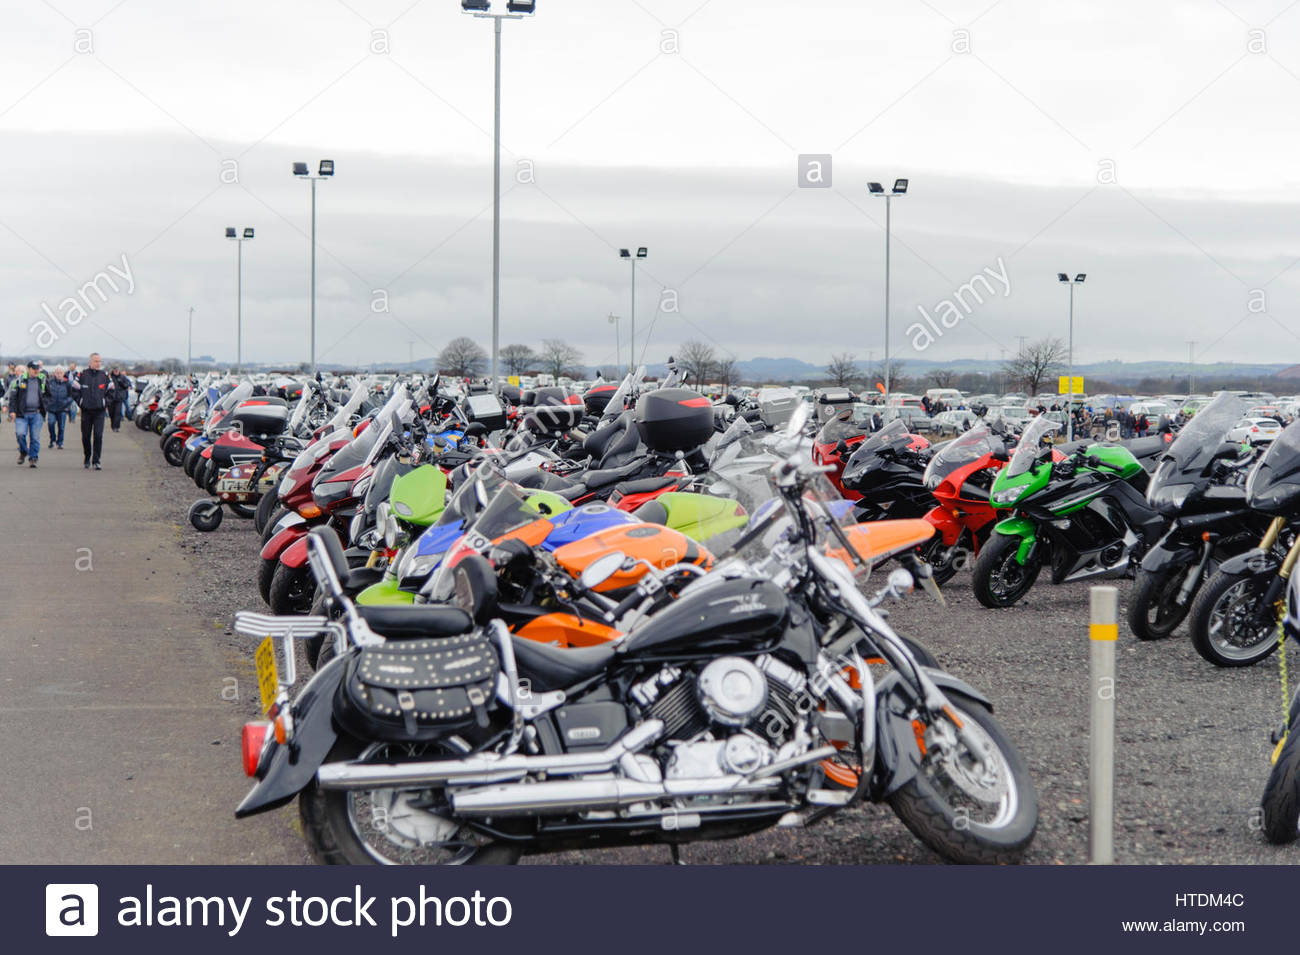 Edinburgh, UK. 11 March, 2017. Some of the thousands of visitors motorcycles at the Carole Nash MCN Scottish Motorcycle - Stock Image